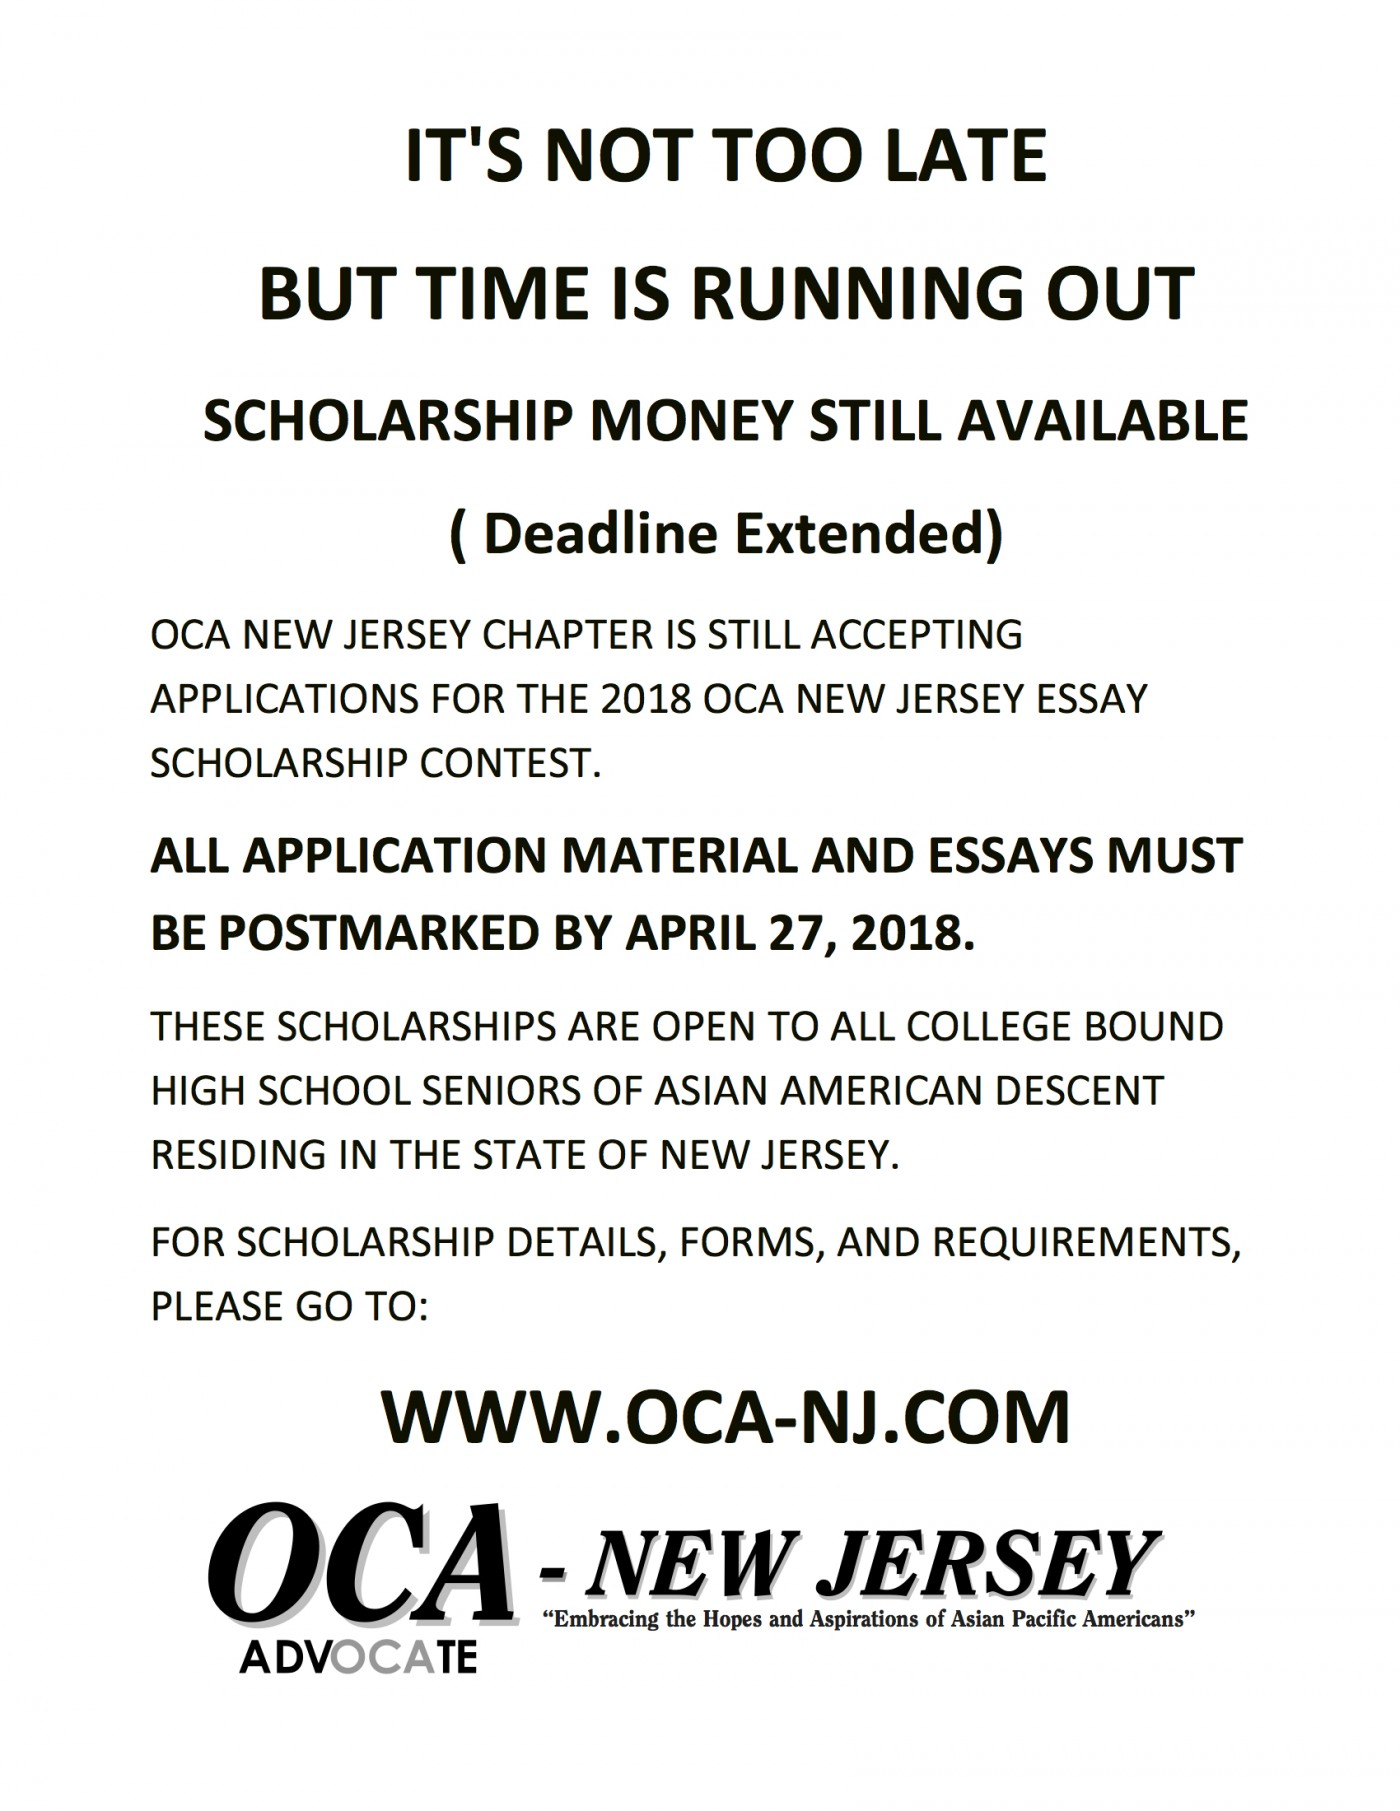 014 Essay Example Scholarships Entended Deadline Oca Nj Shocking For High School Students Study Abroad Examples 2018 Bachelors And Masters 1400